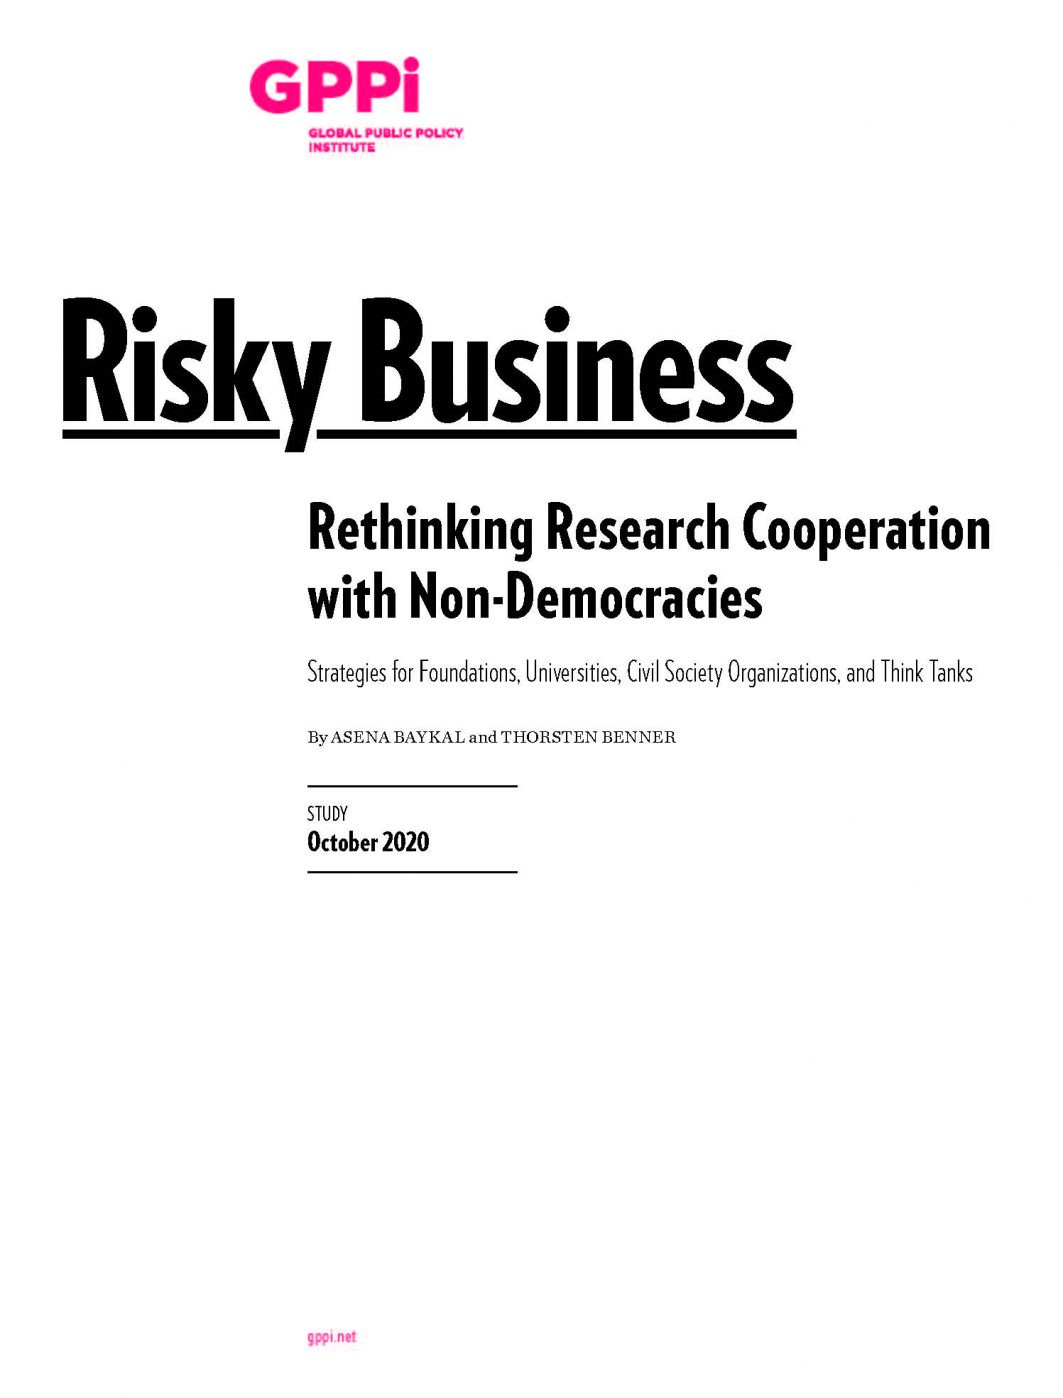 Risky Business Rethinking Research Cooperation with Non-Democracies